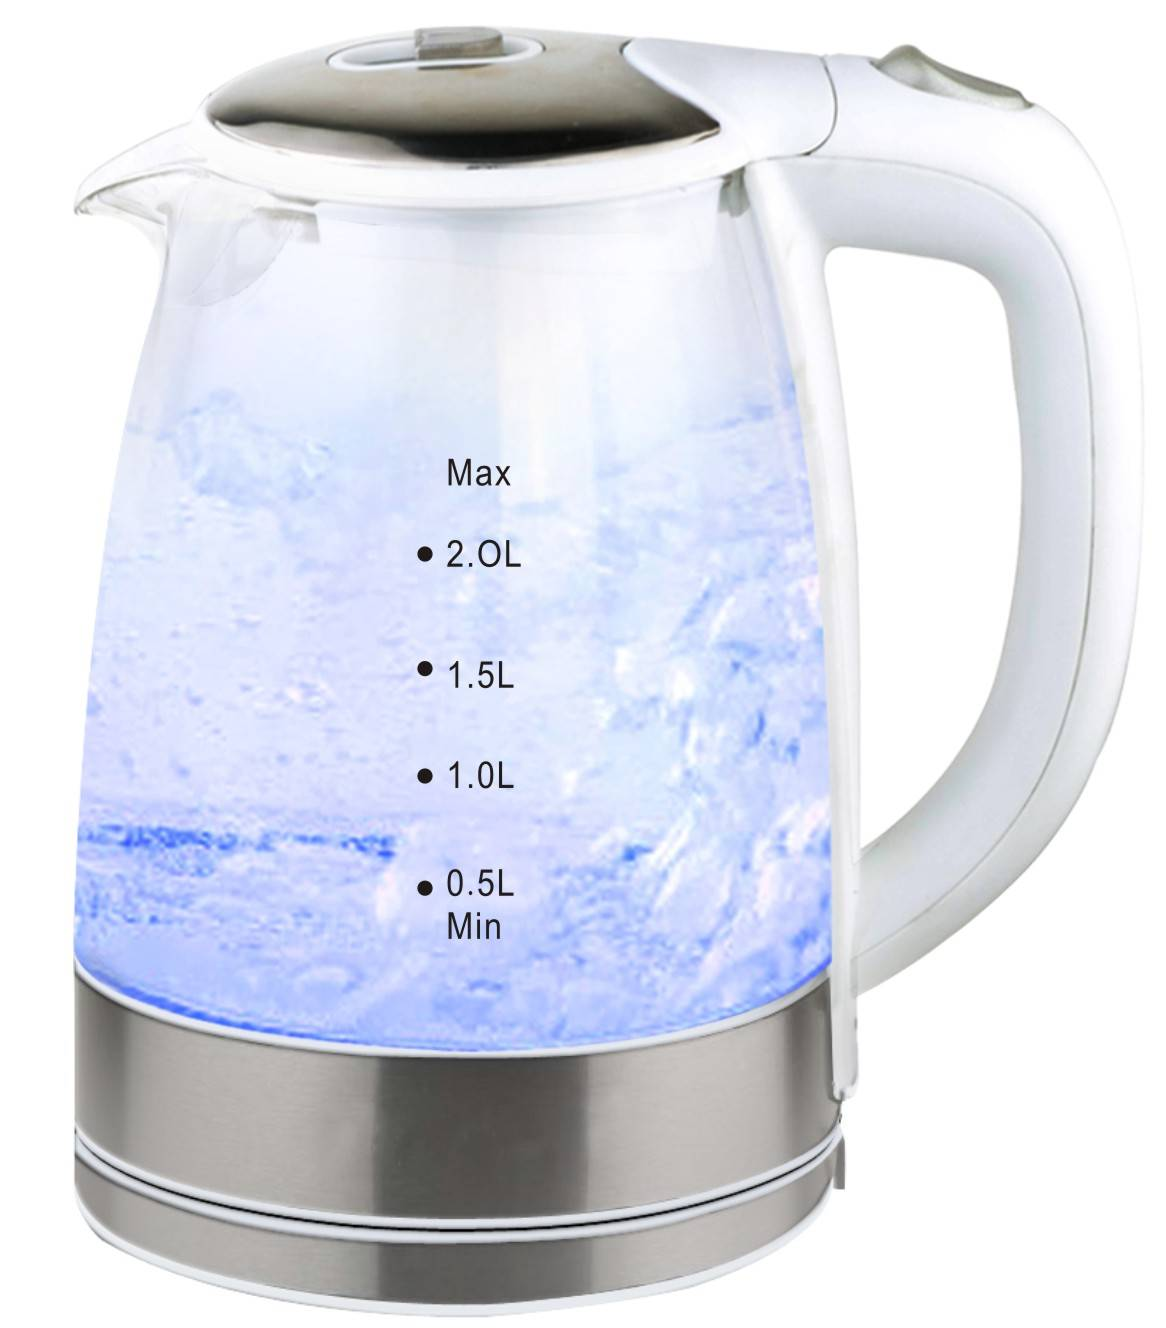 New 2.0 Liter Electric& Pyrex Glass Water Kettle (Blue LED-light)